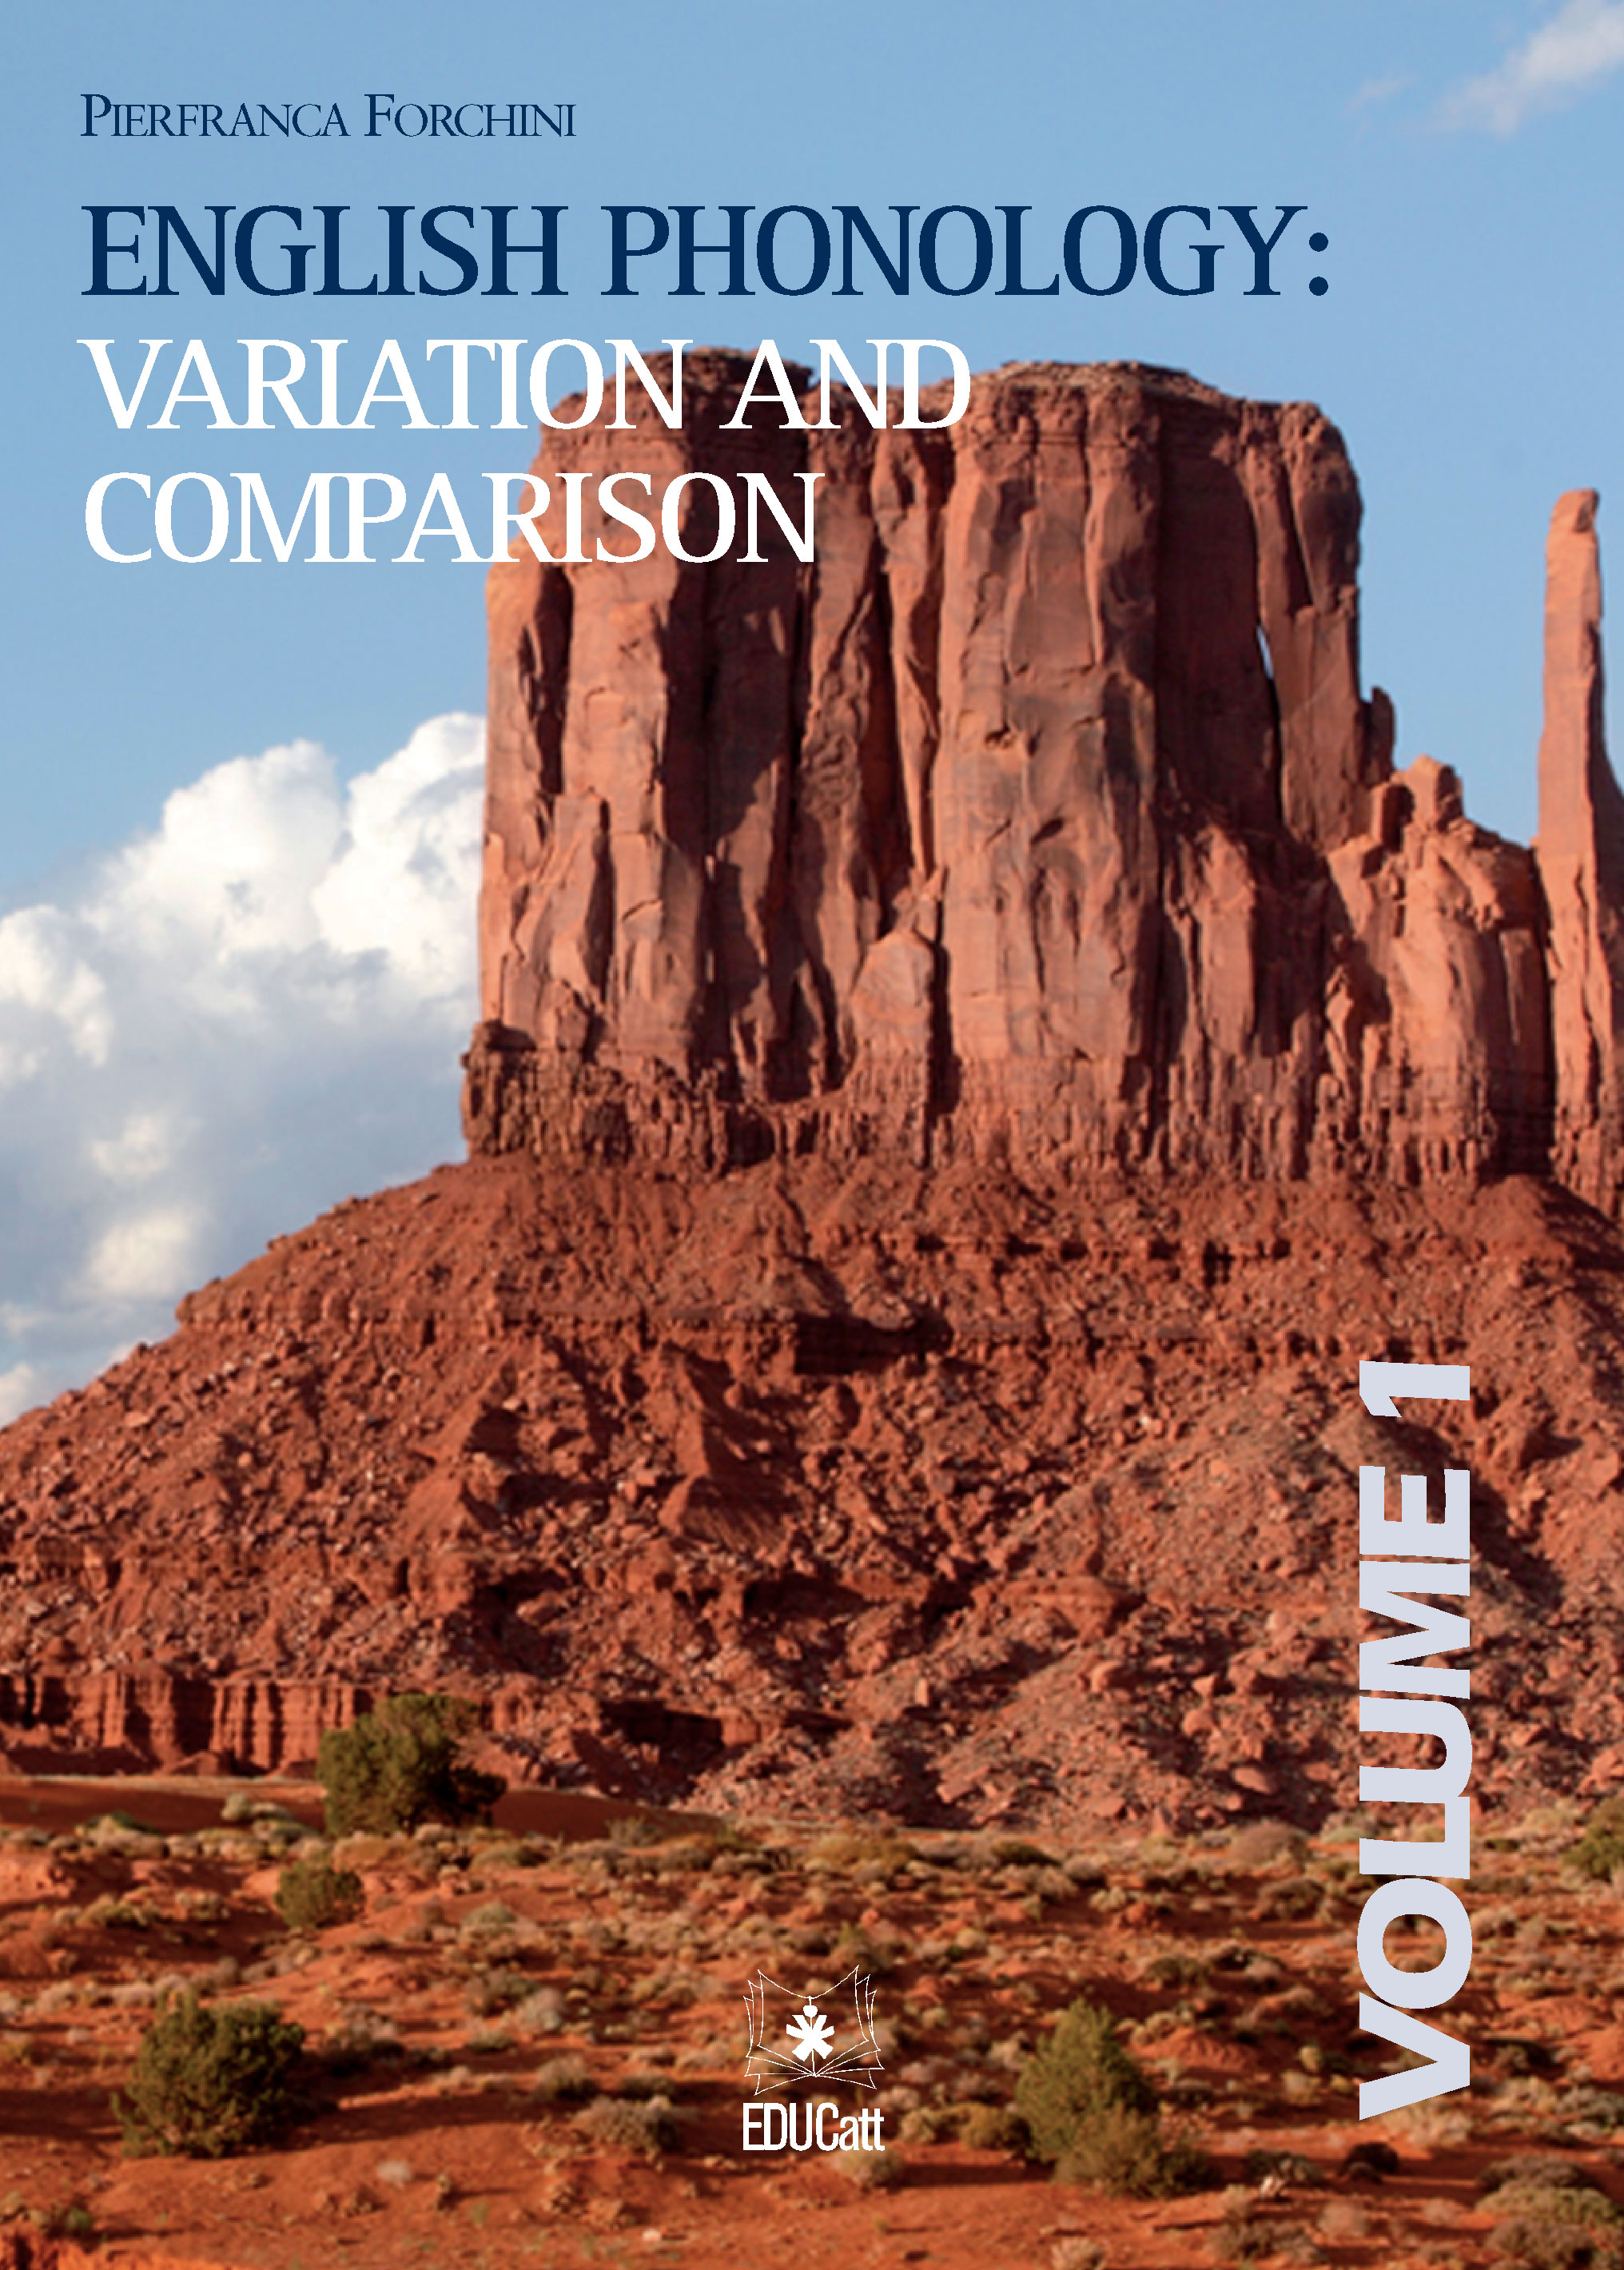 ENGLISH PHONOLOGY: VARIATION AND COMPARISON